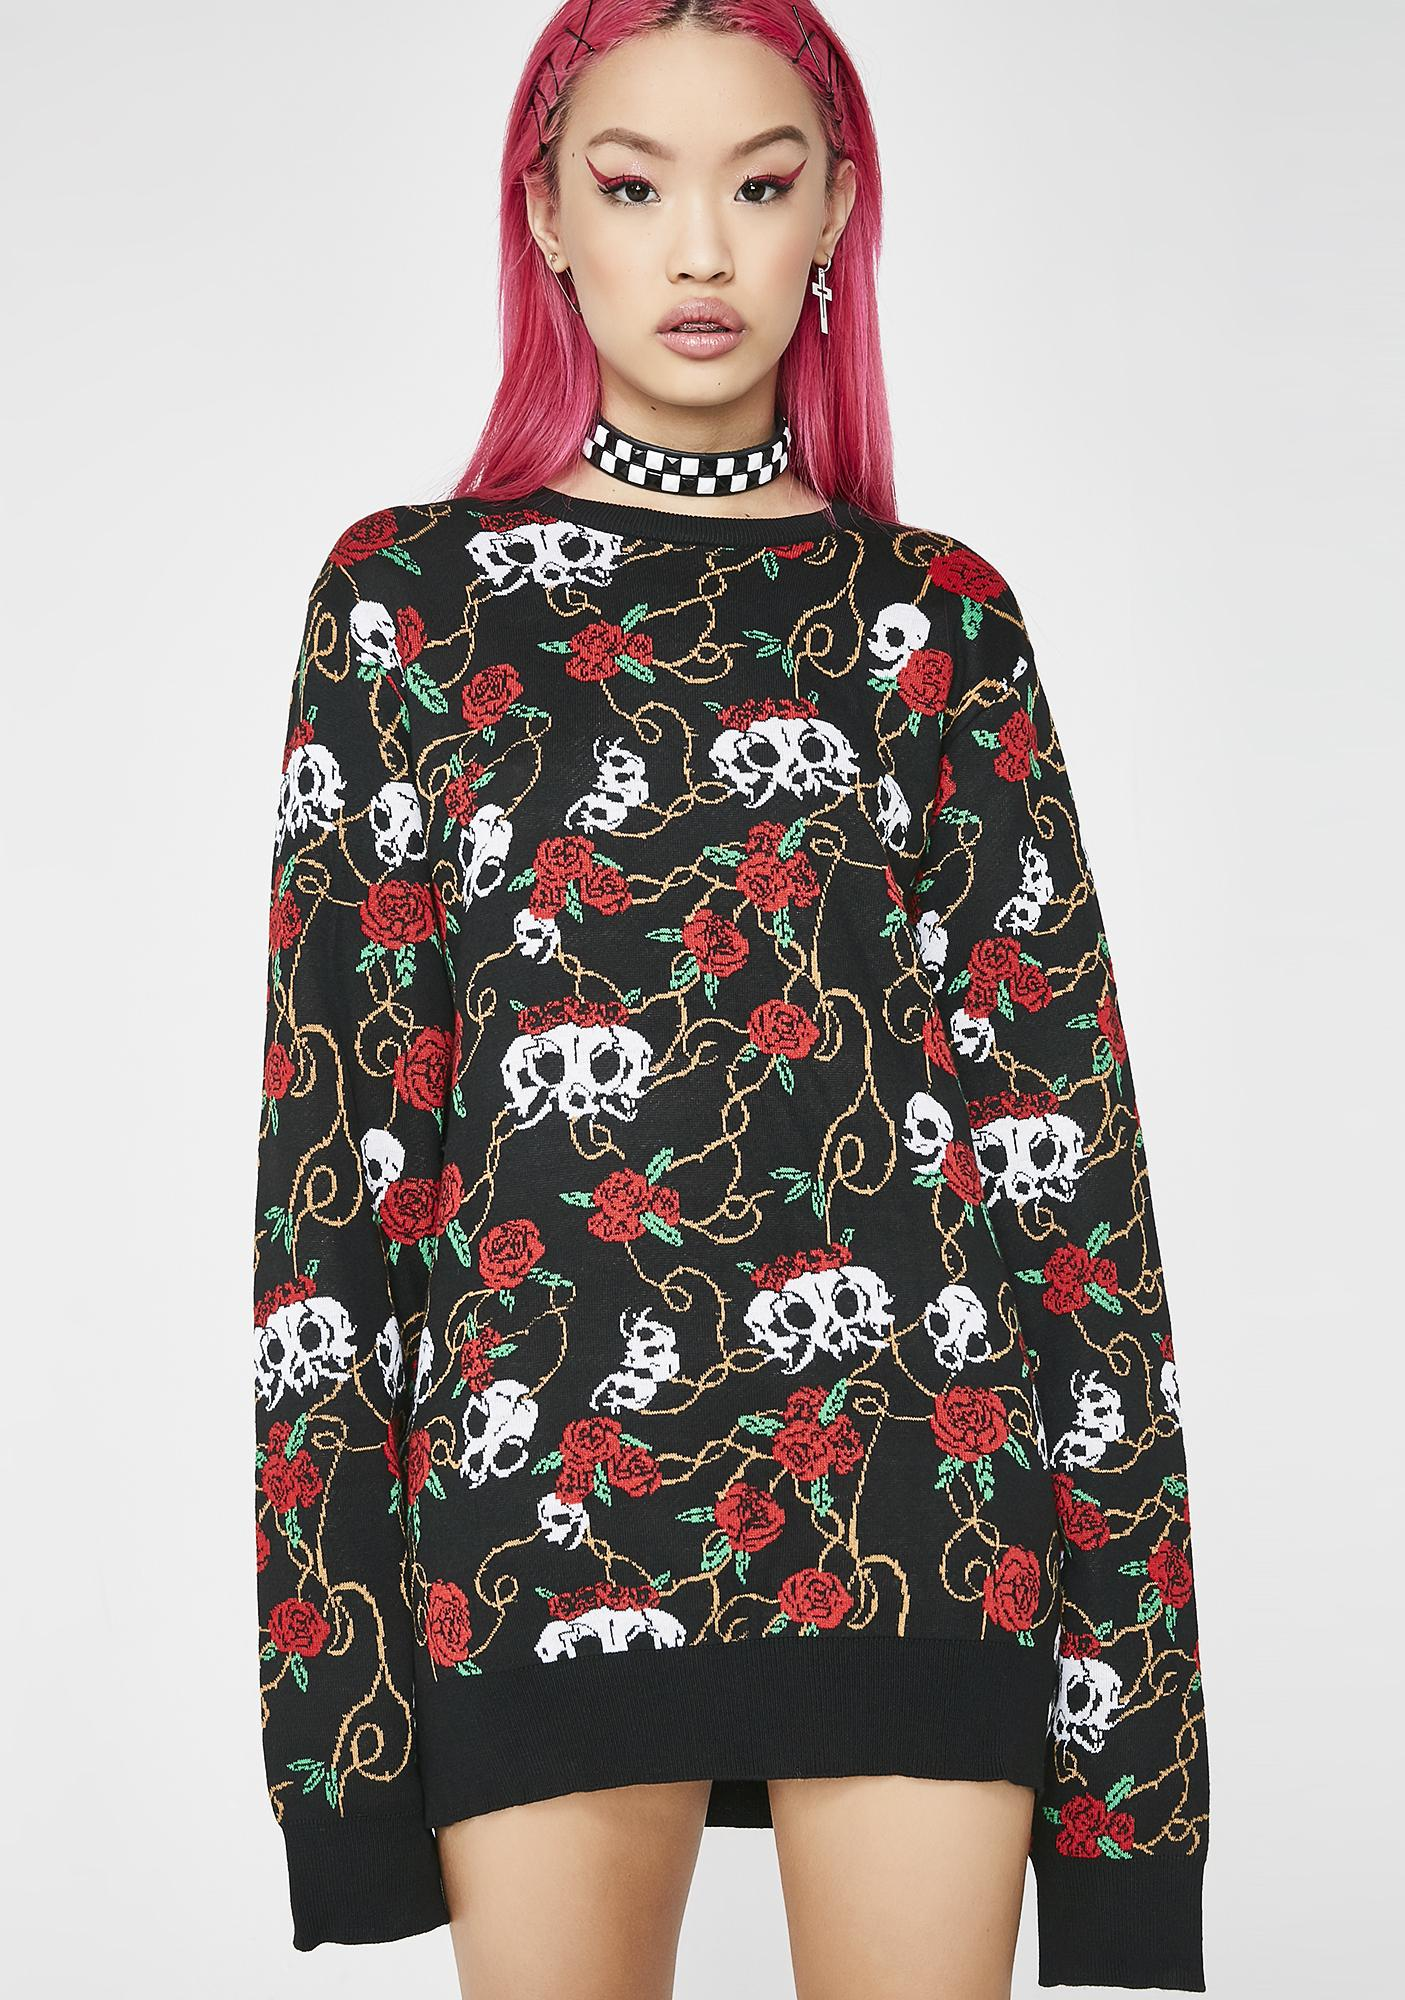 RIPNDIP Dead Rose Knit Sweater